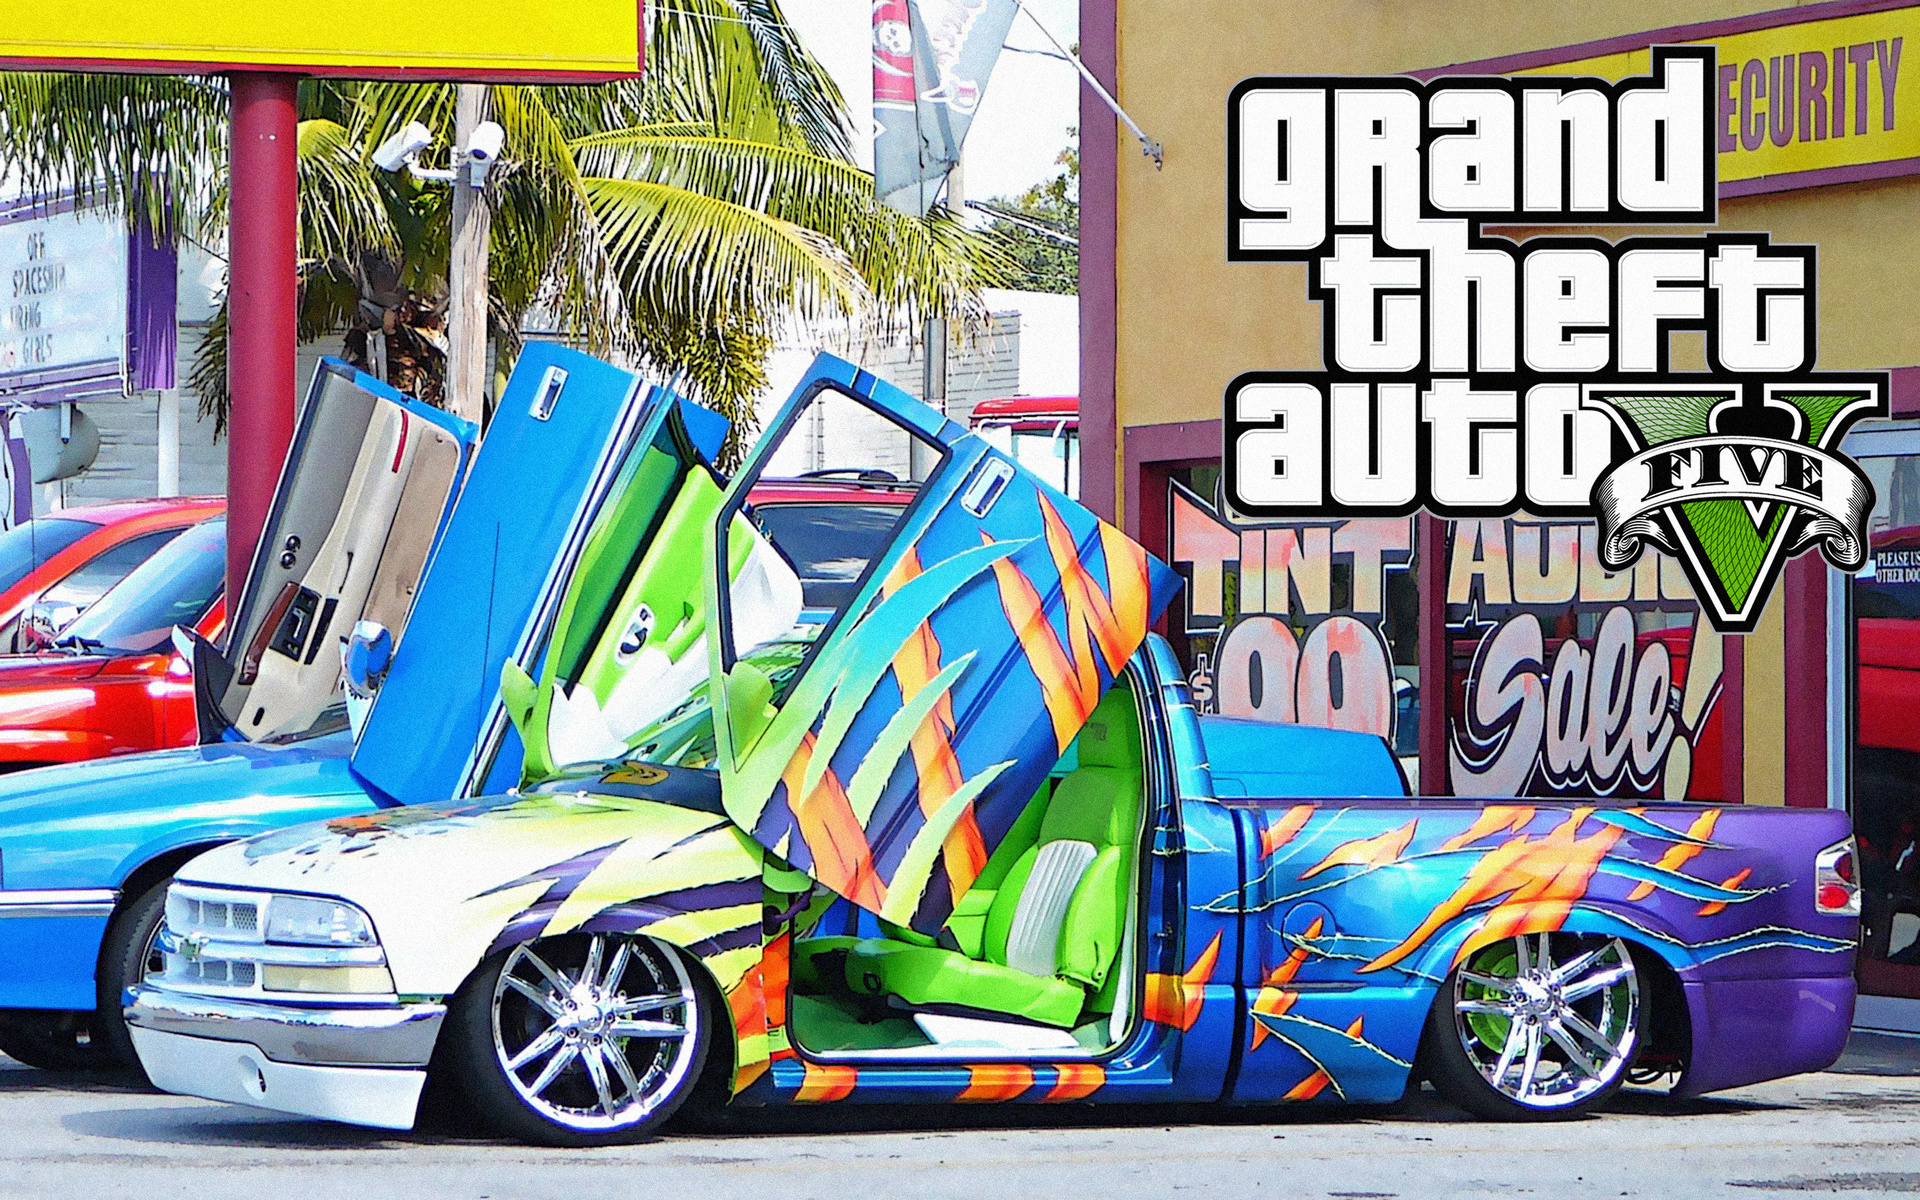 grand theft auto v | free desktop wallpapers for widescreen, hd and